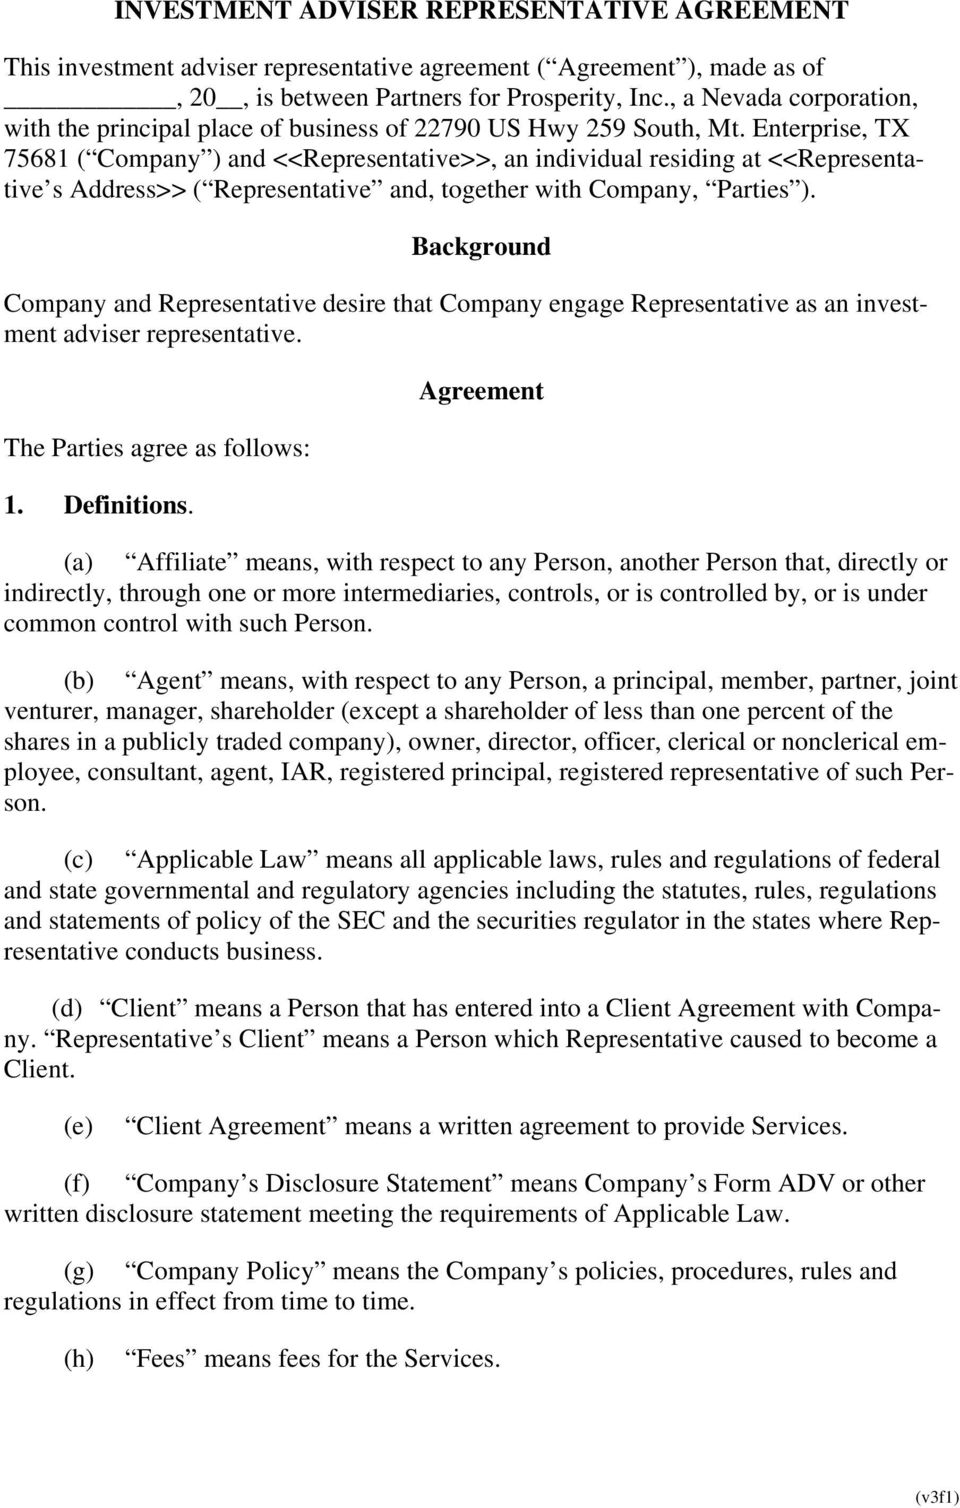 Company Representative Agreement Investment Adviser Representative Agreement Pdf